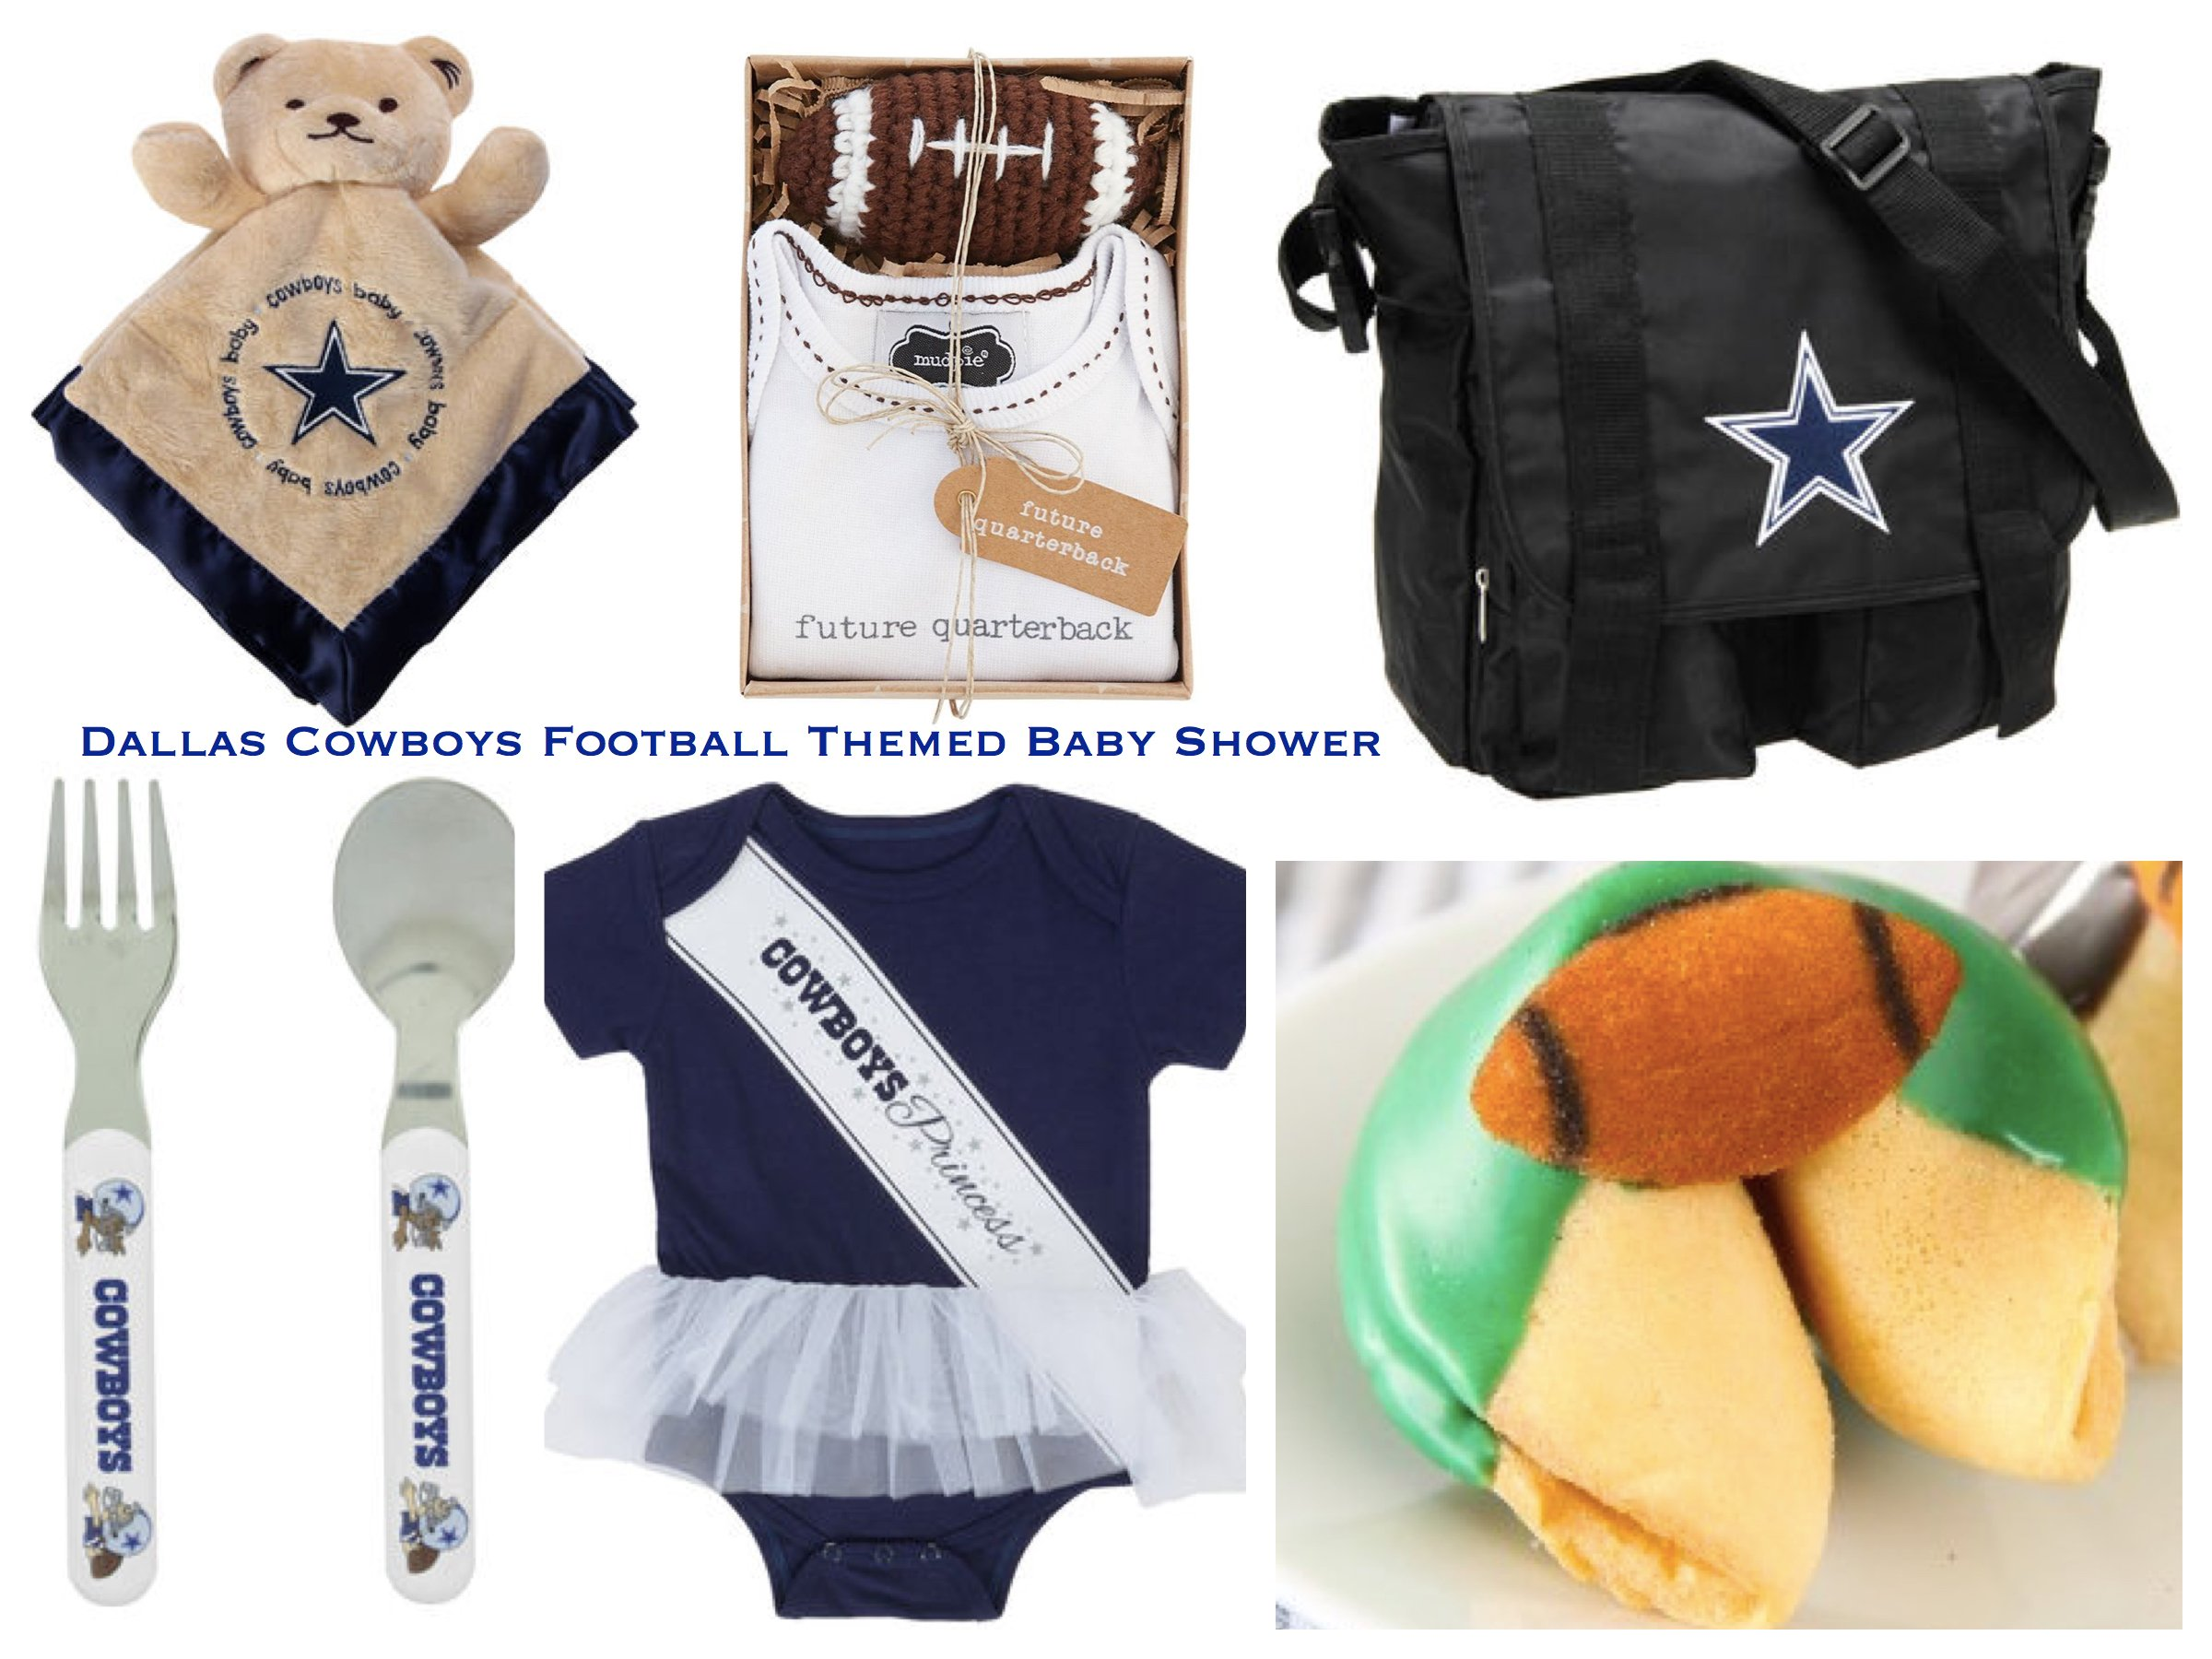 Dallas Cowboys Football Themed Baby Shower